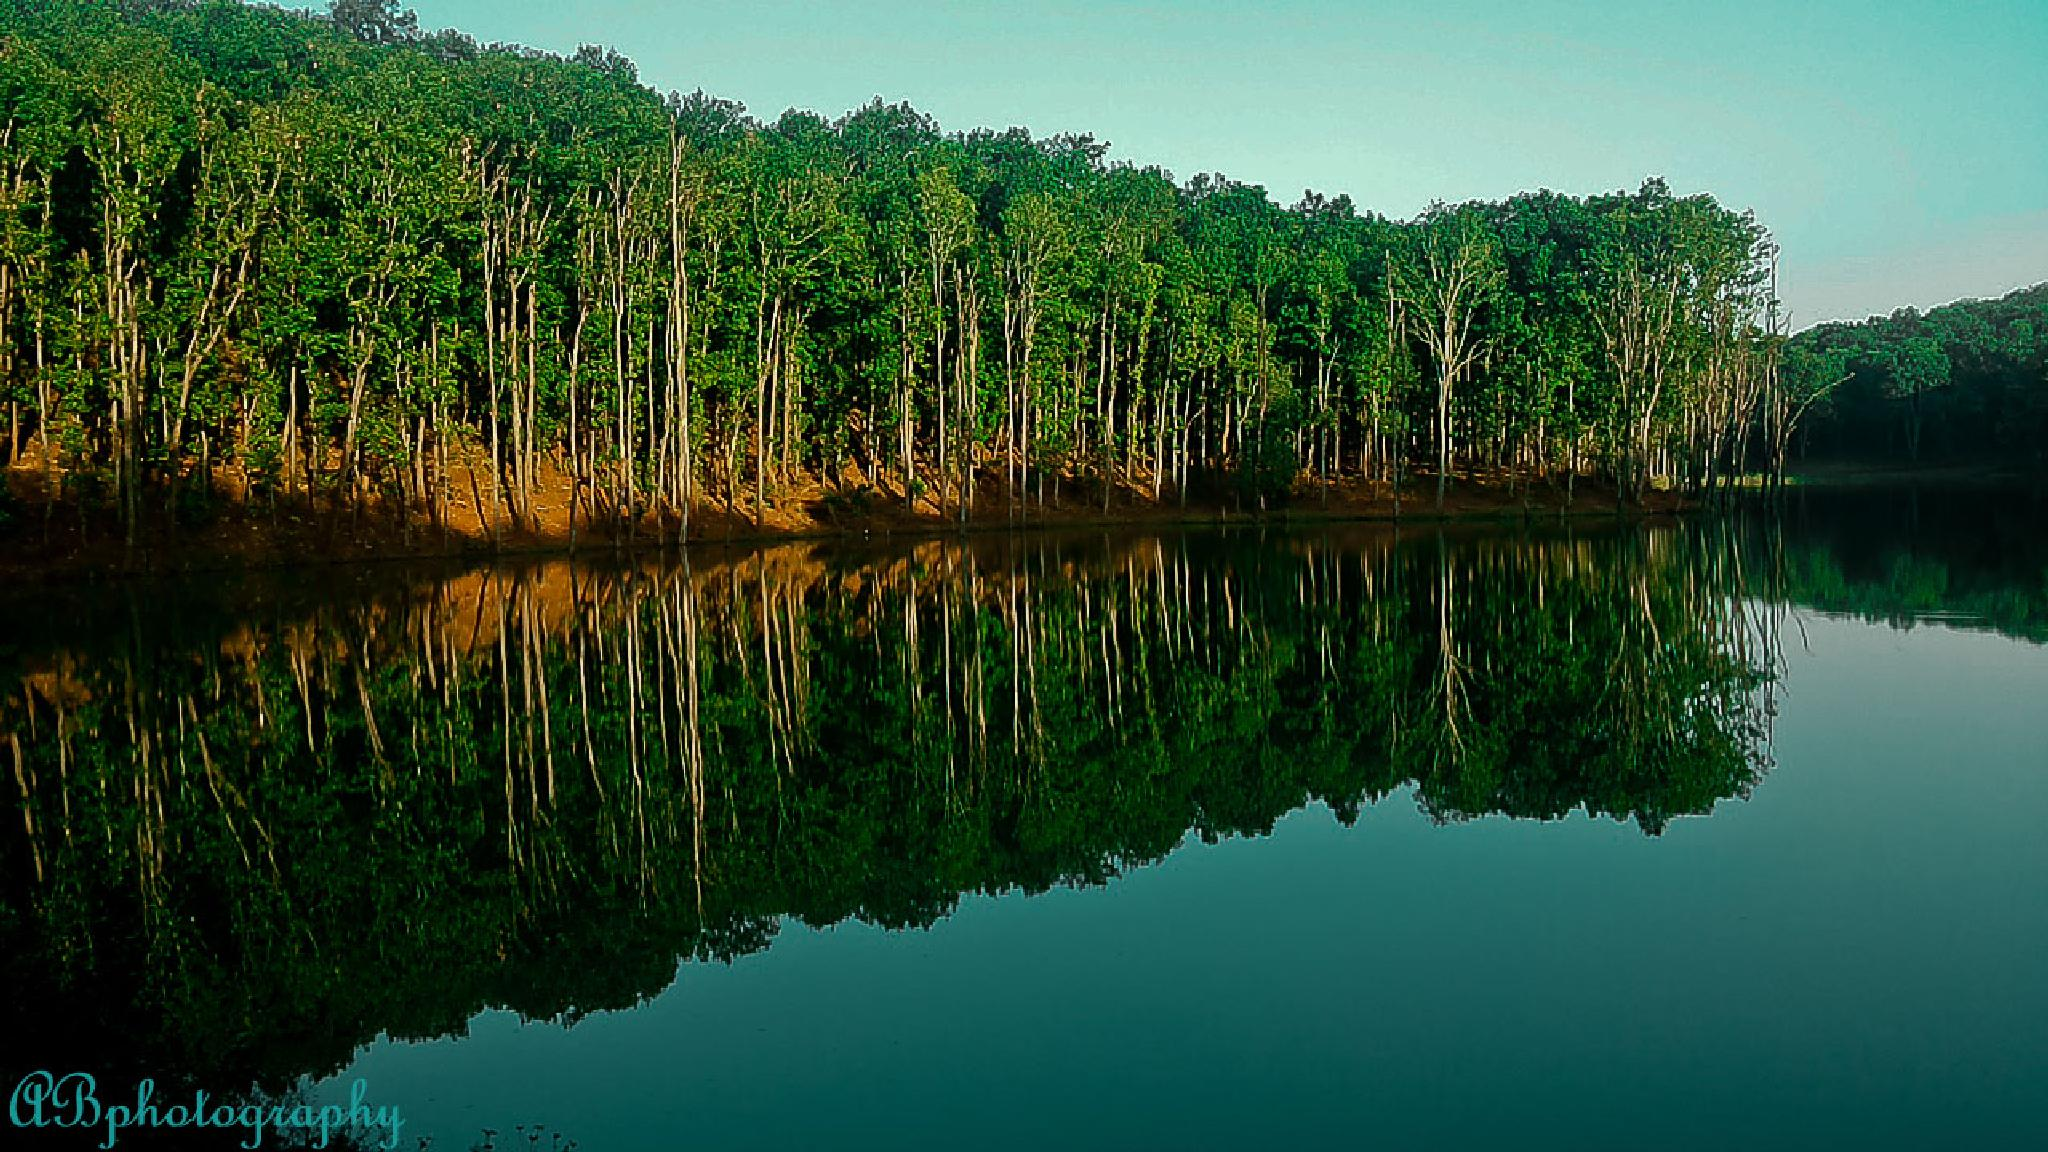 Reflection... by banikabhishek003